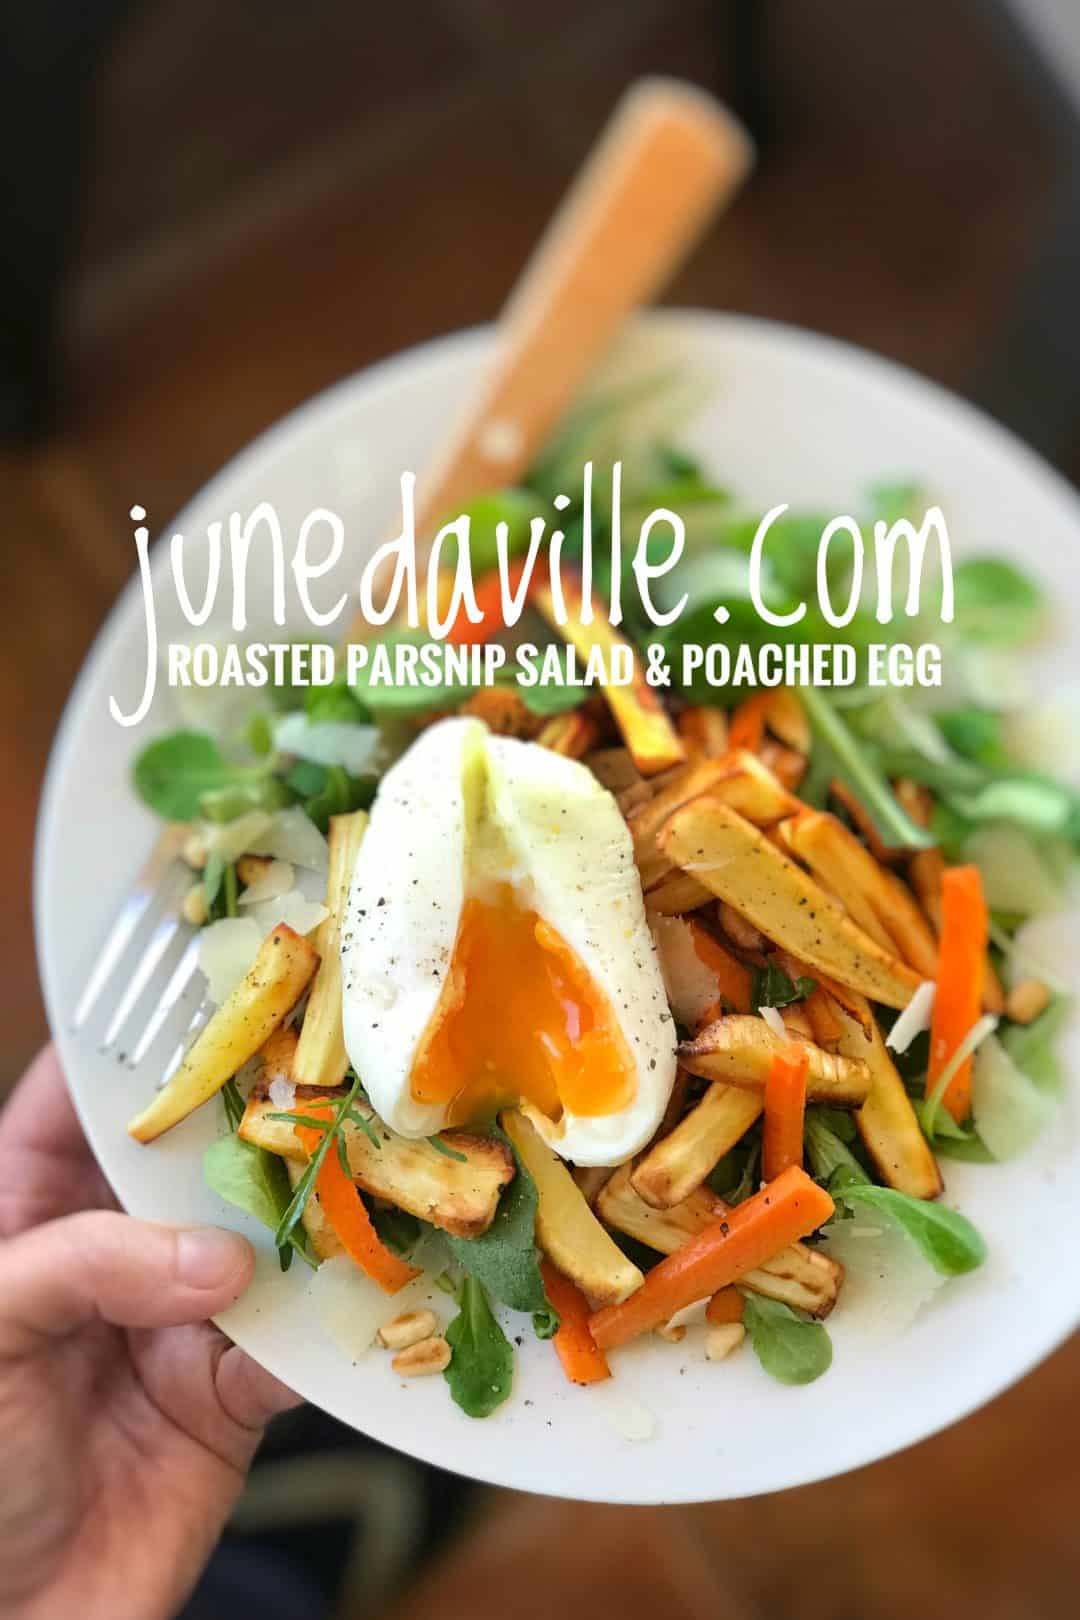 My roasted carrot and parsnip salad with a creamy poached eggs on top, garnished with pine nuts and shaved parmesan cheese... the perfect winter salad!